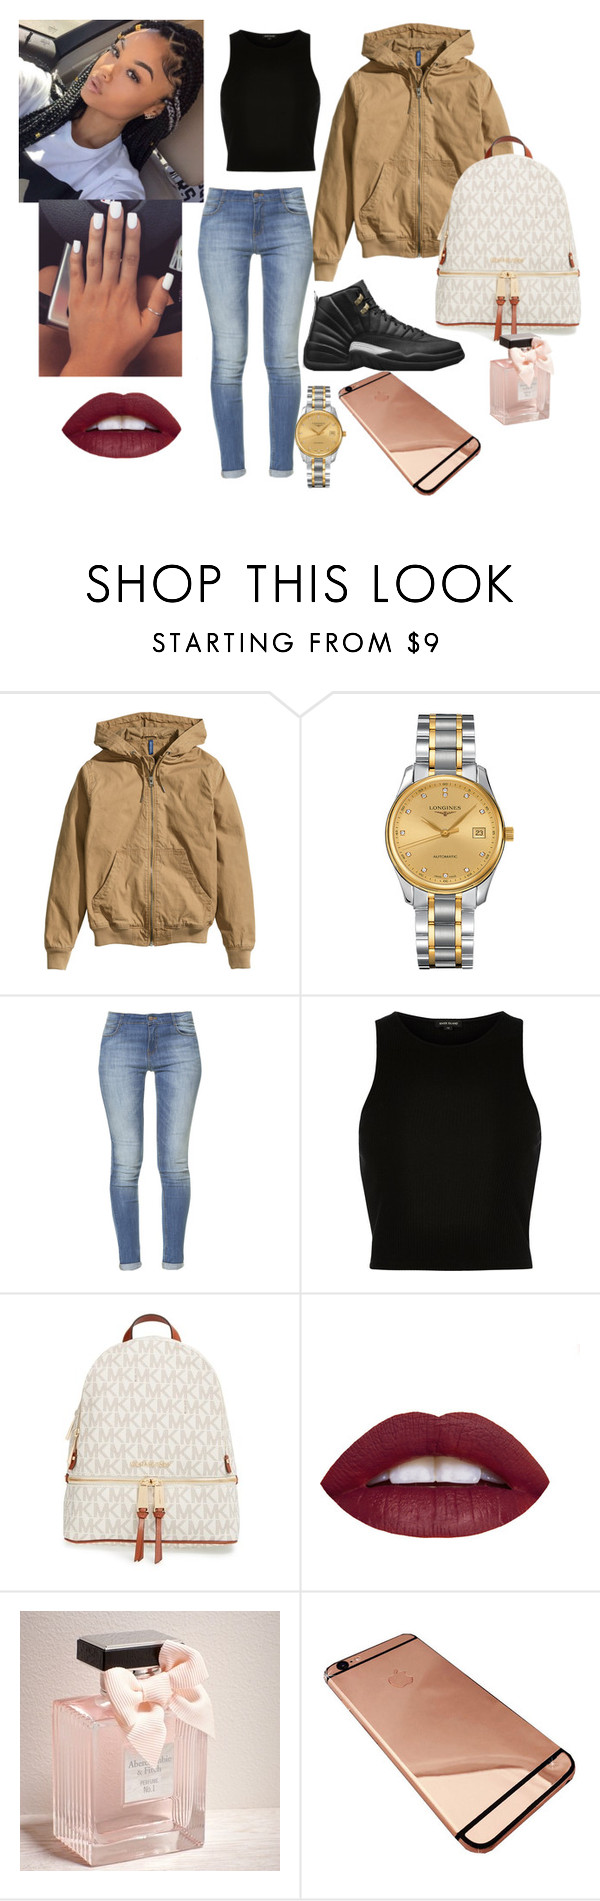 """""""The Master 12s"""" by ohthatsdess ❤ liked on Polyvore featuring H&M, Longines, Retrò, Zara, River Island, MICHAEL Michael Kors, Abercrombie & Fitch, women's clothing, women and female"""